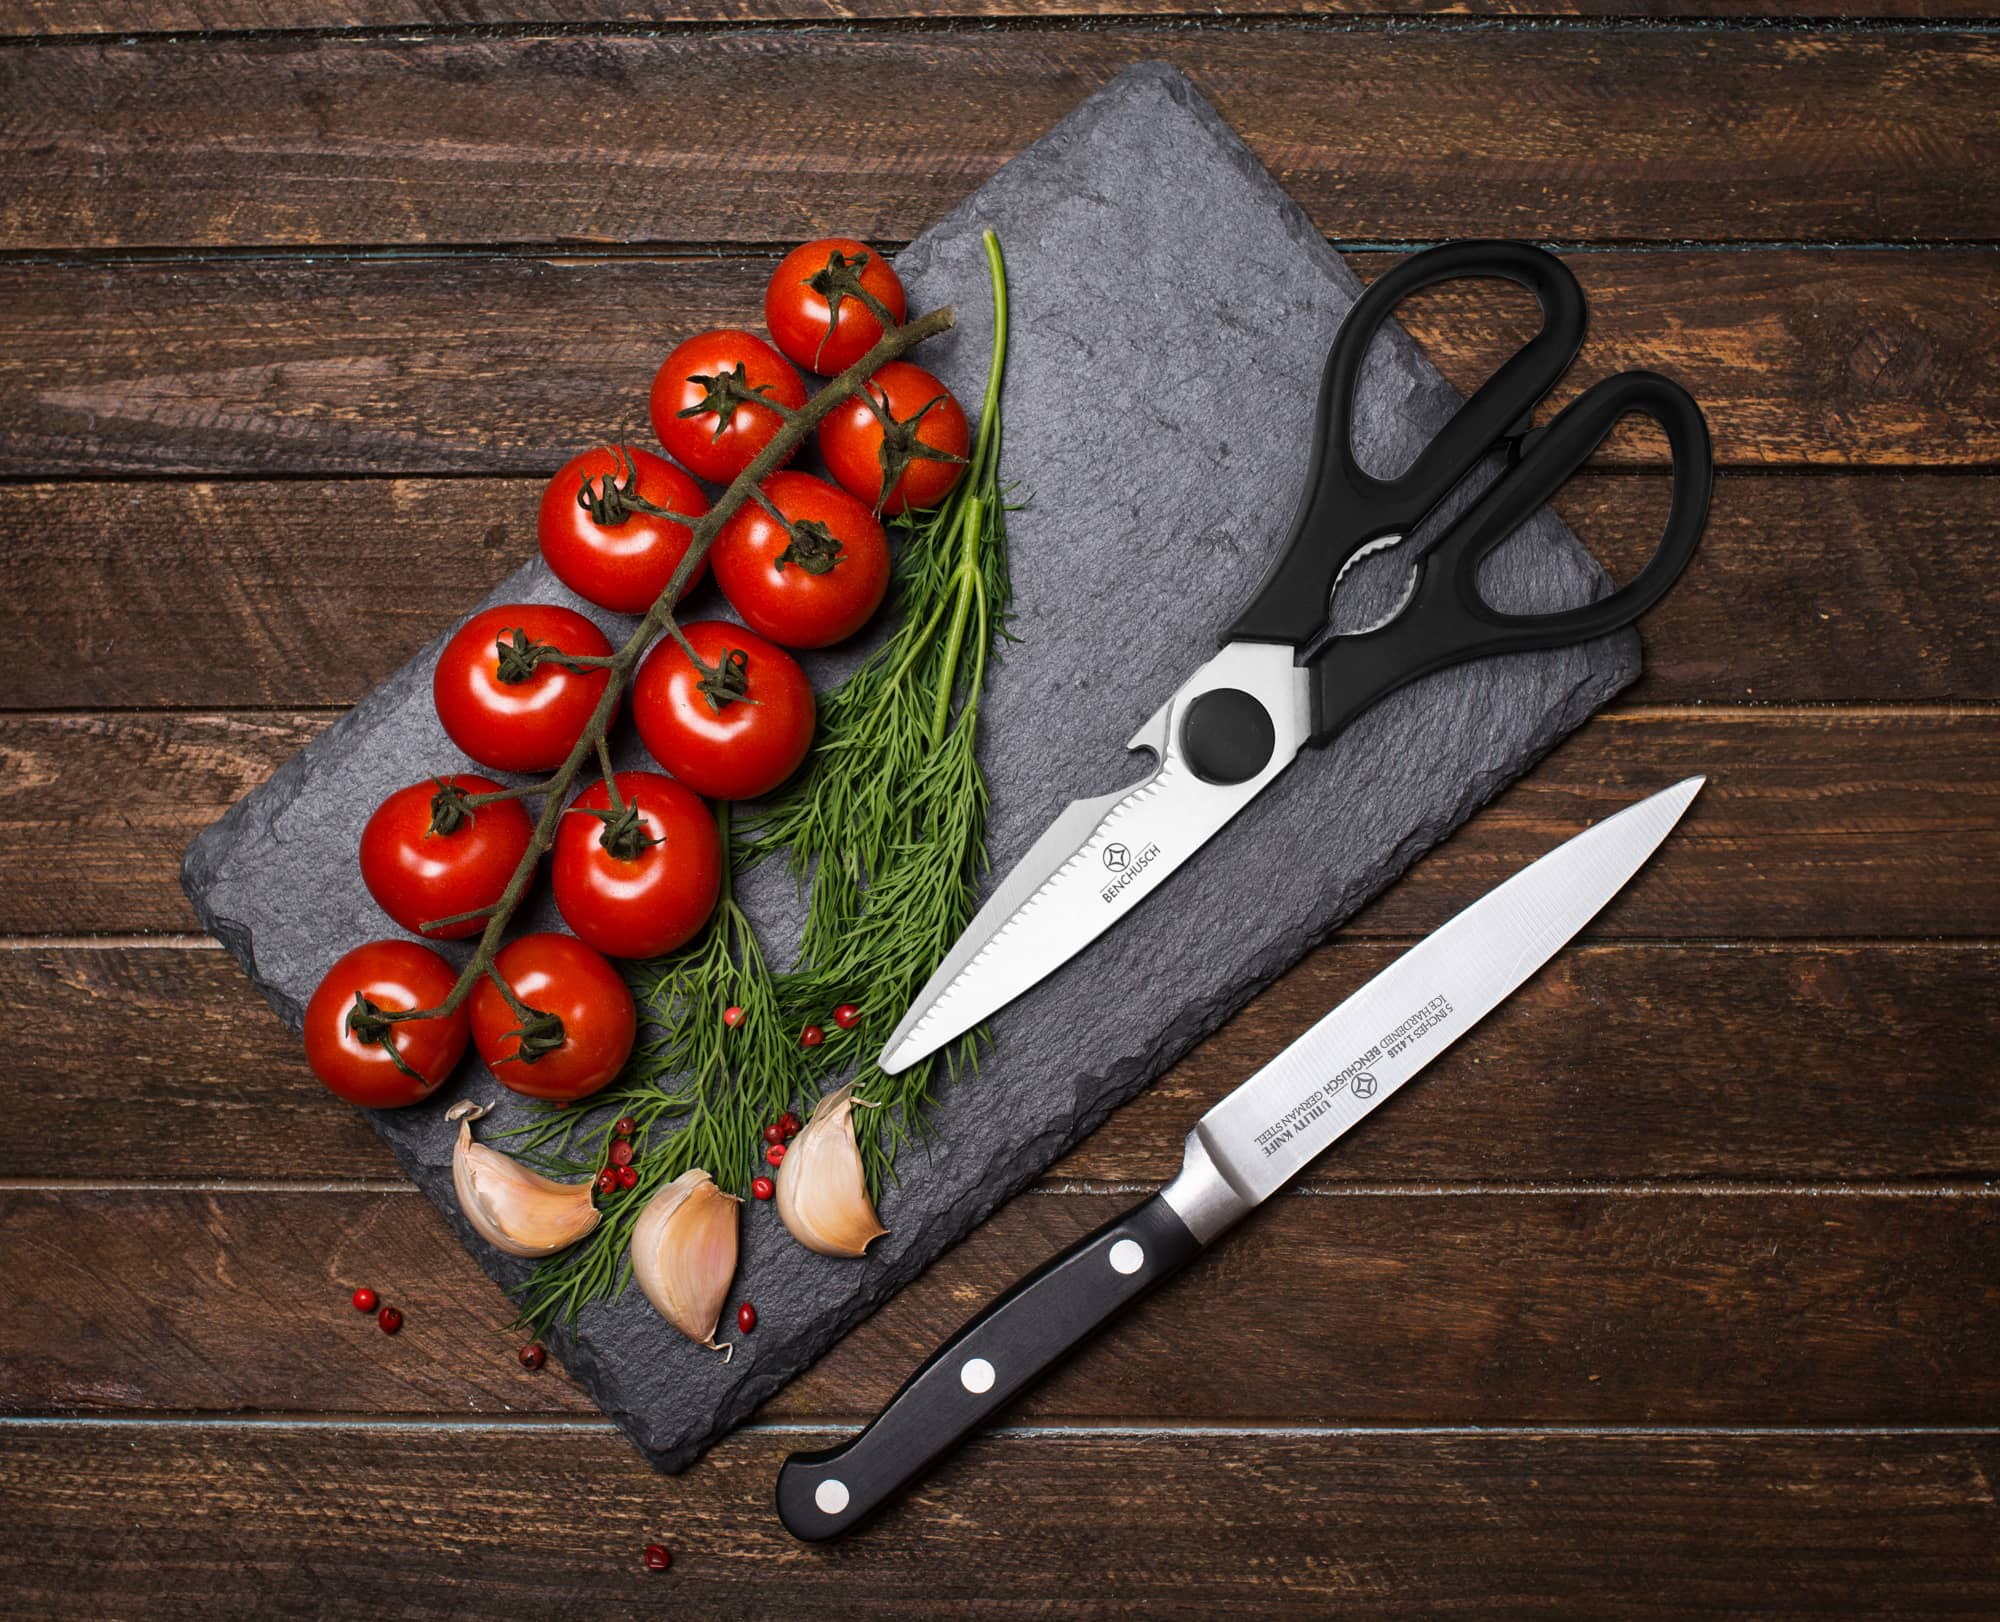 Benchusch Classic 5-inch Utility Knife and 8-Inch Scissors with tomatoes, dills, garlics on the black stone board in the wood background